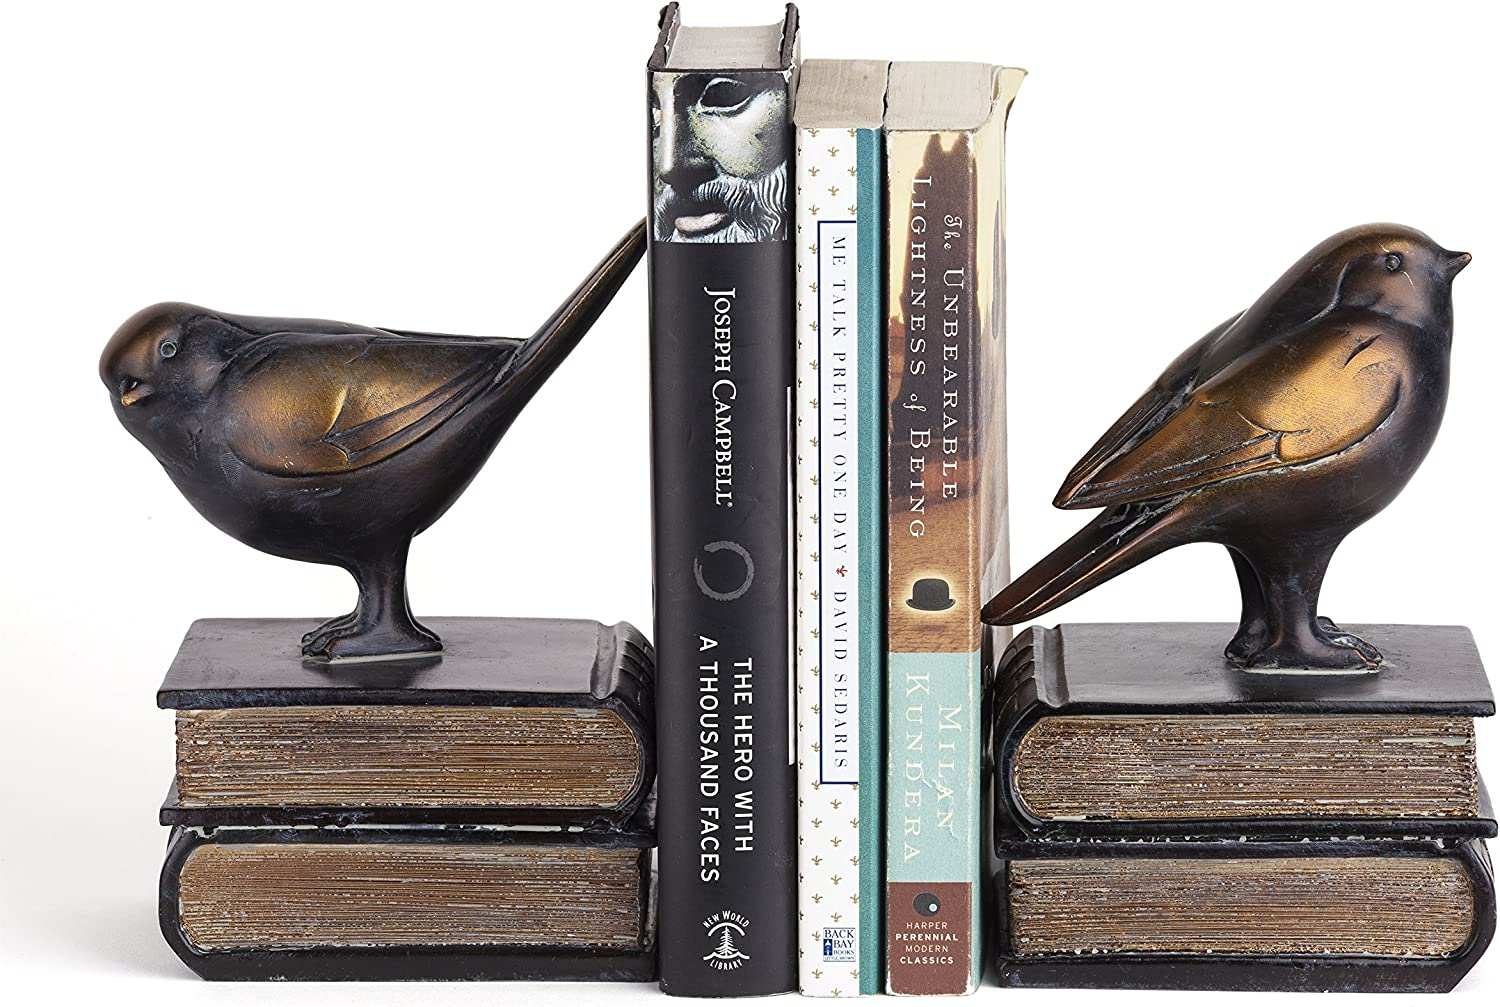 Danya B. DS781 Decorative Rustic Bookshelf Decor - Birds on Books Bookend Set - Bronze